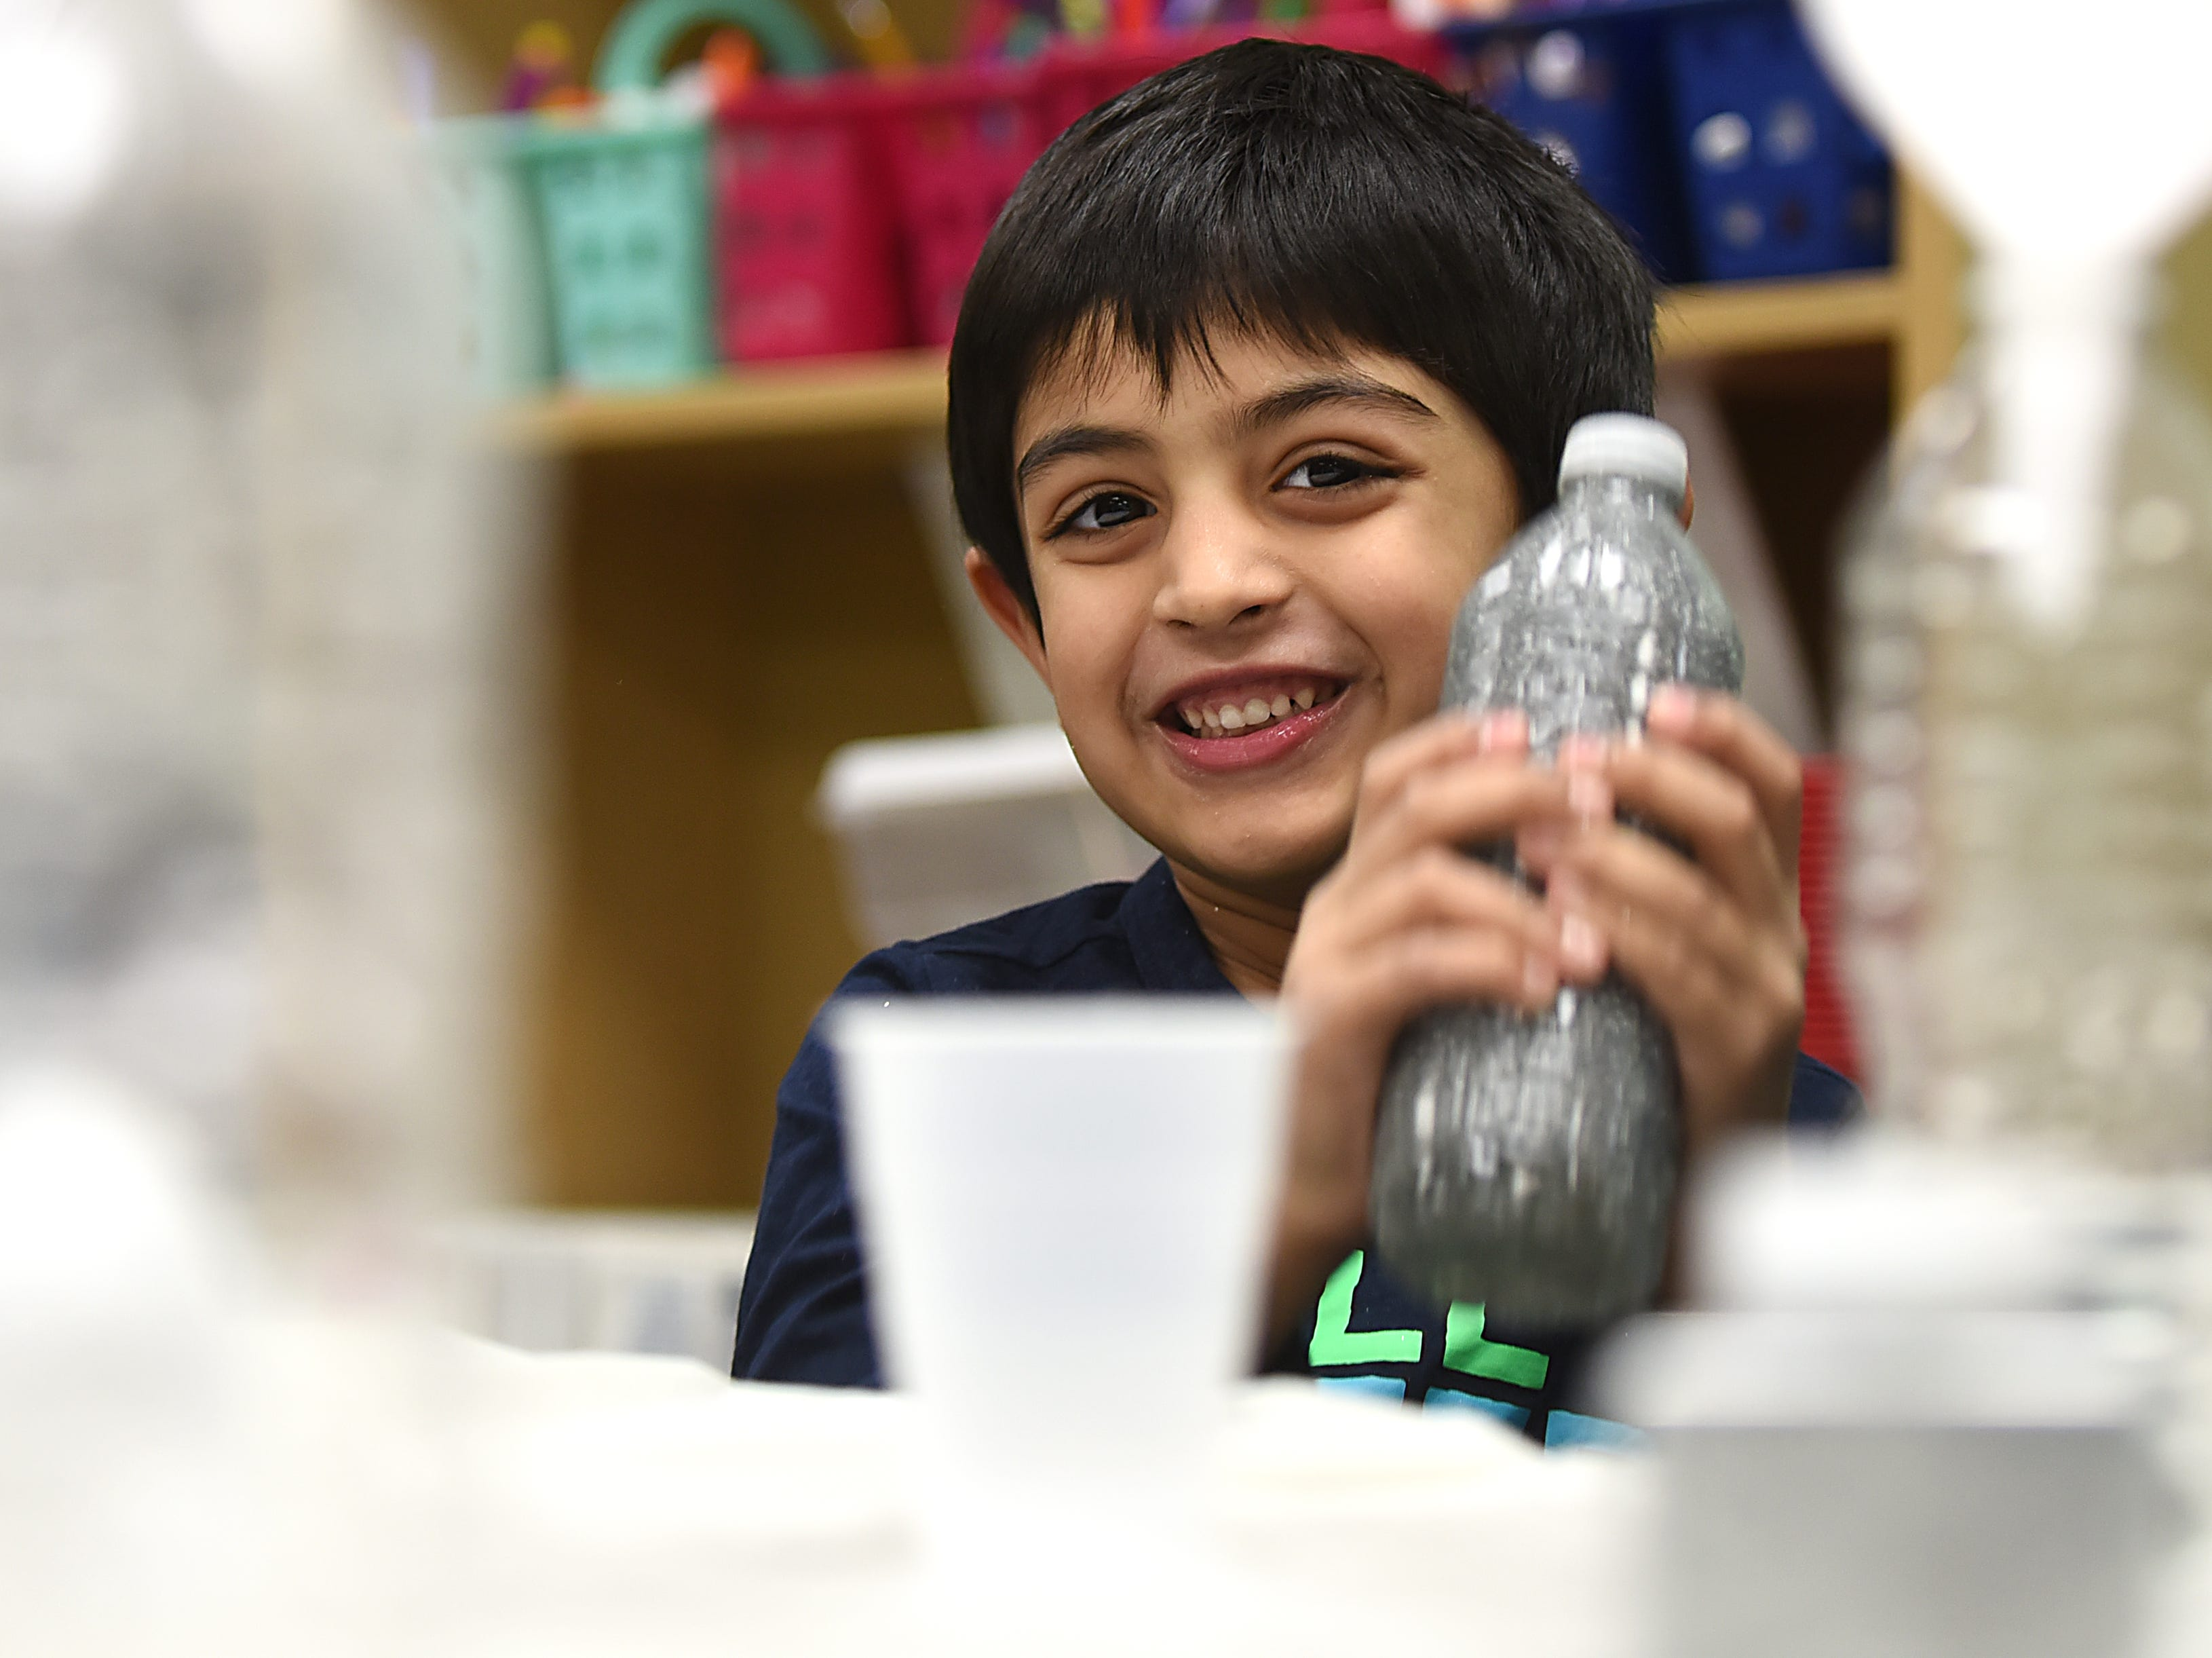 Rayoyau Jaweid, 5 smiles as he shakes his snowstorm in a bottle. This is part of the STEM Saturday series at East Rutherford Memorial Library on Saturday January 12, 2019.